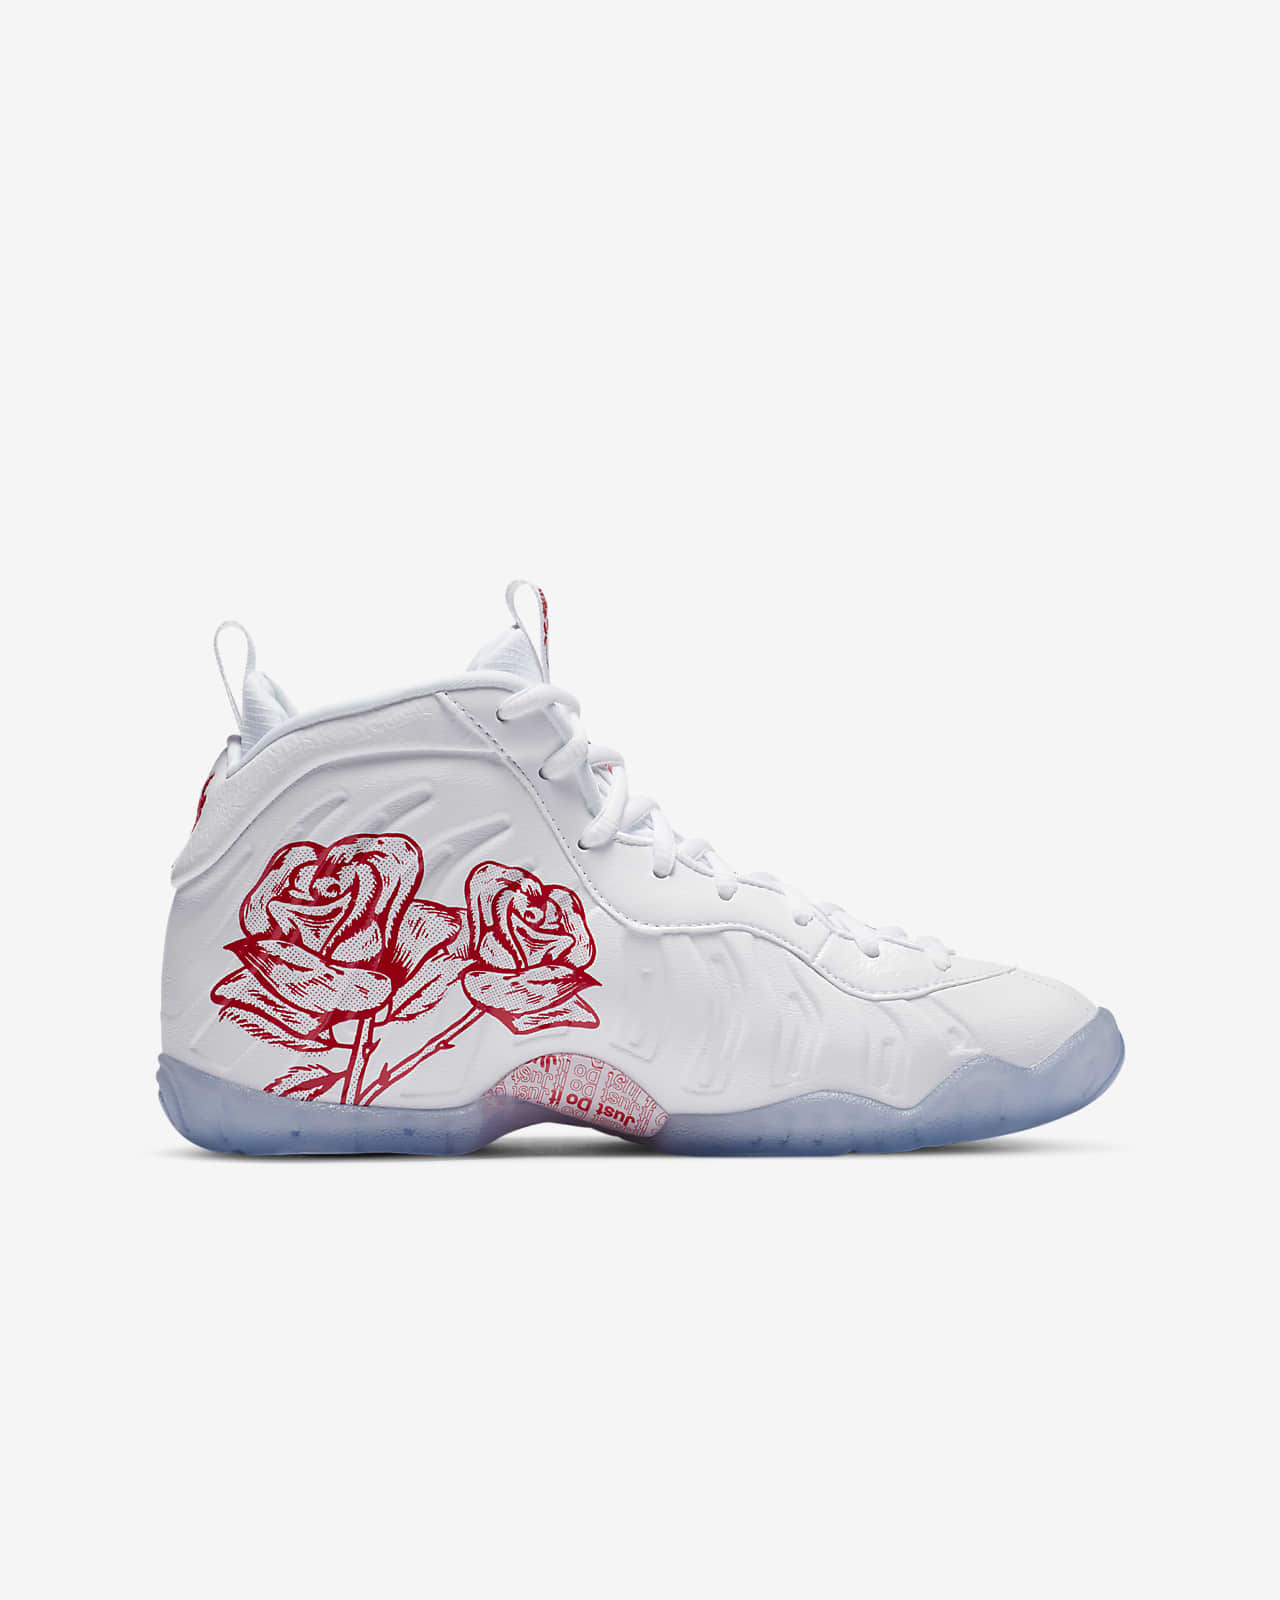 Nike Women s Air Foamposite One Floral ...Amazon.com